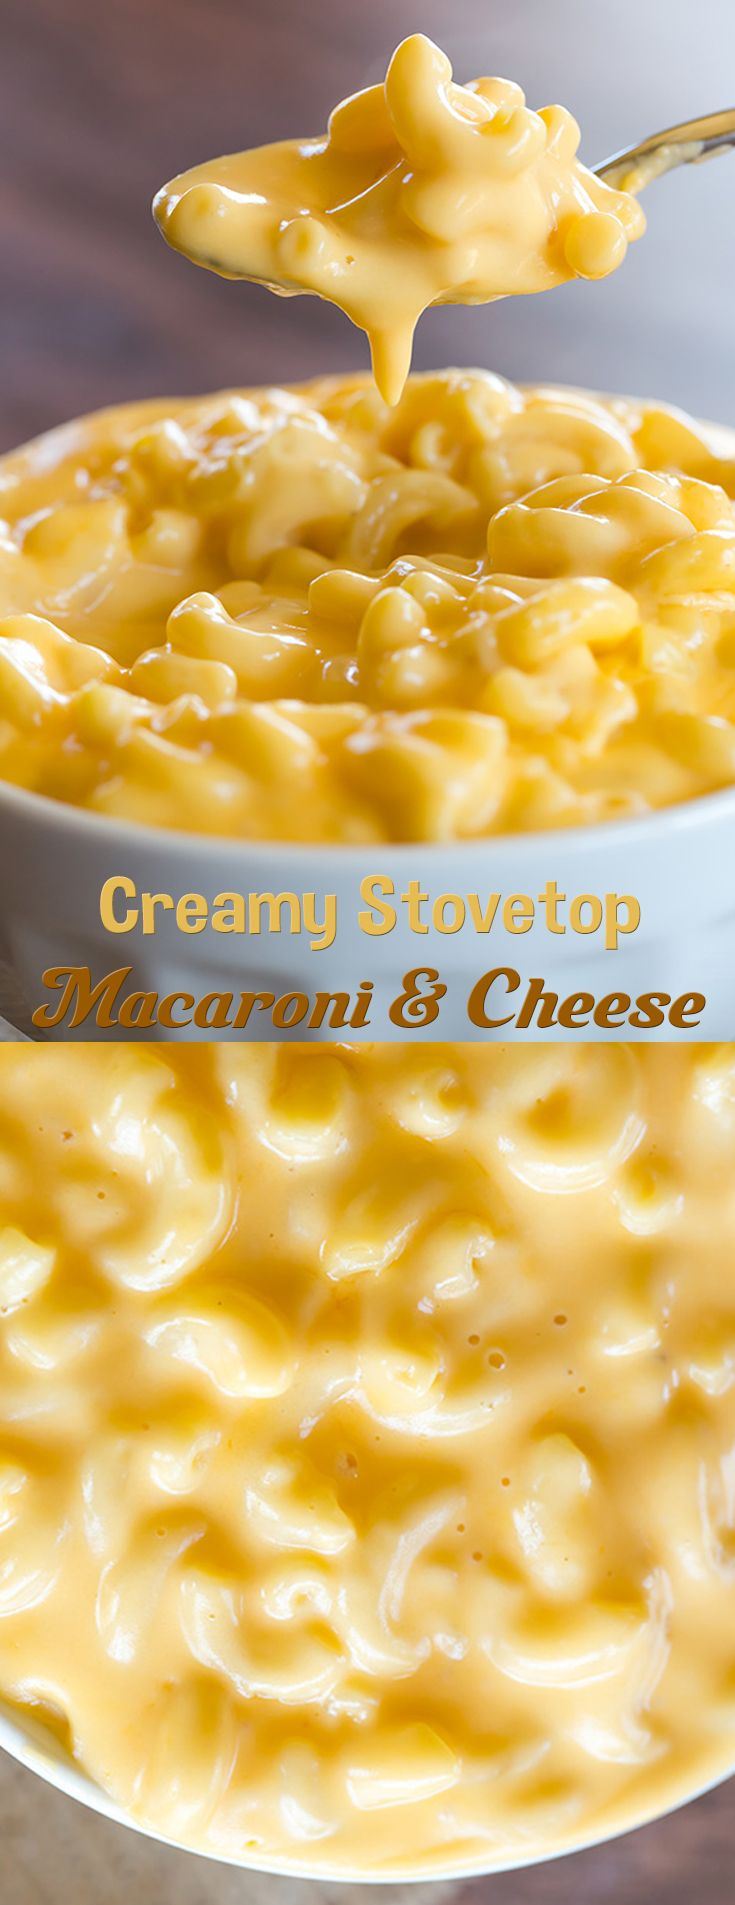 Creamy Stovetop Macaroni and Cheese                                                                                                                                                                                 More